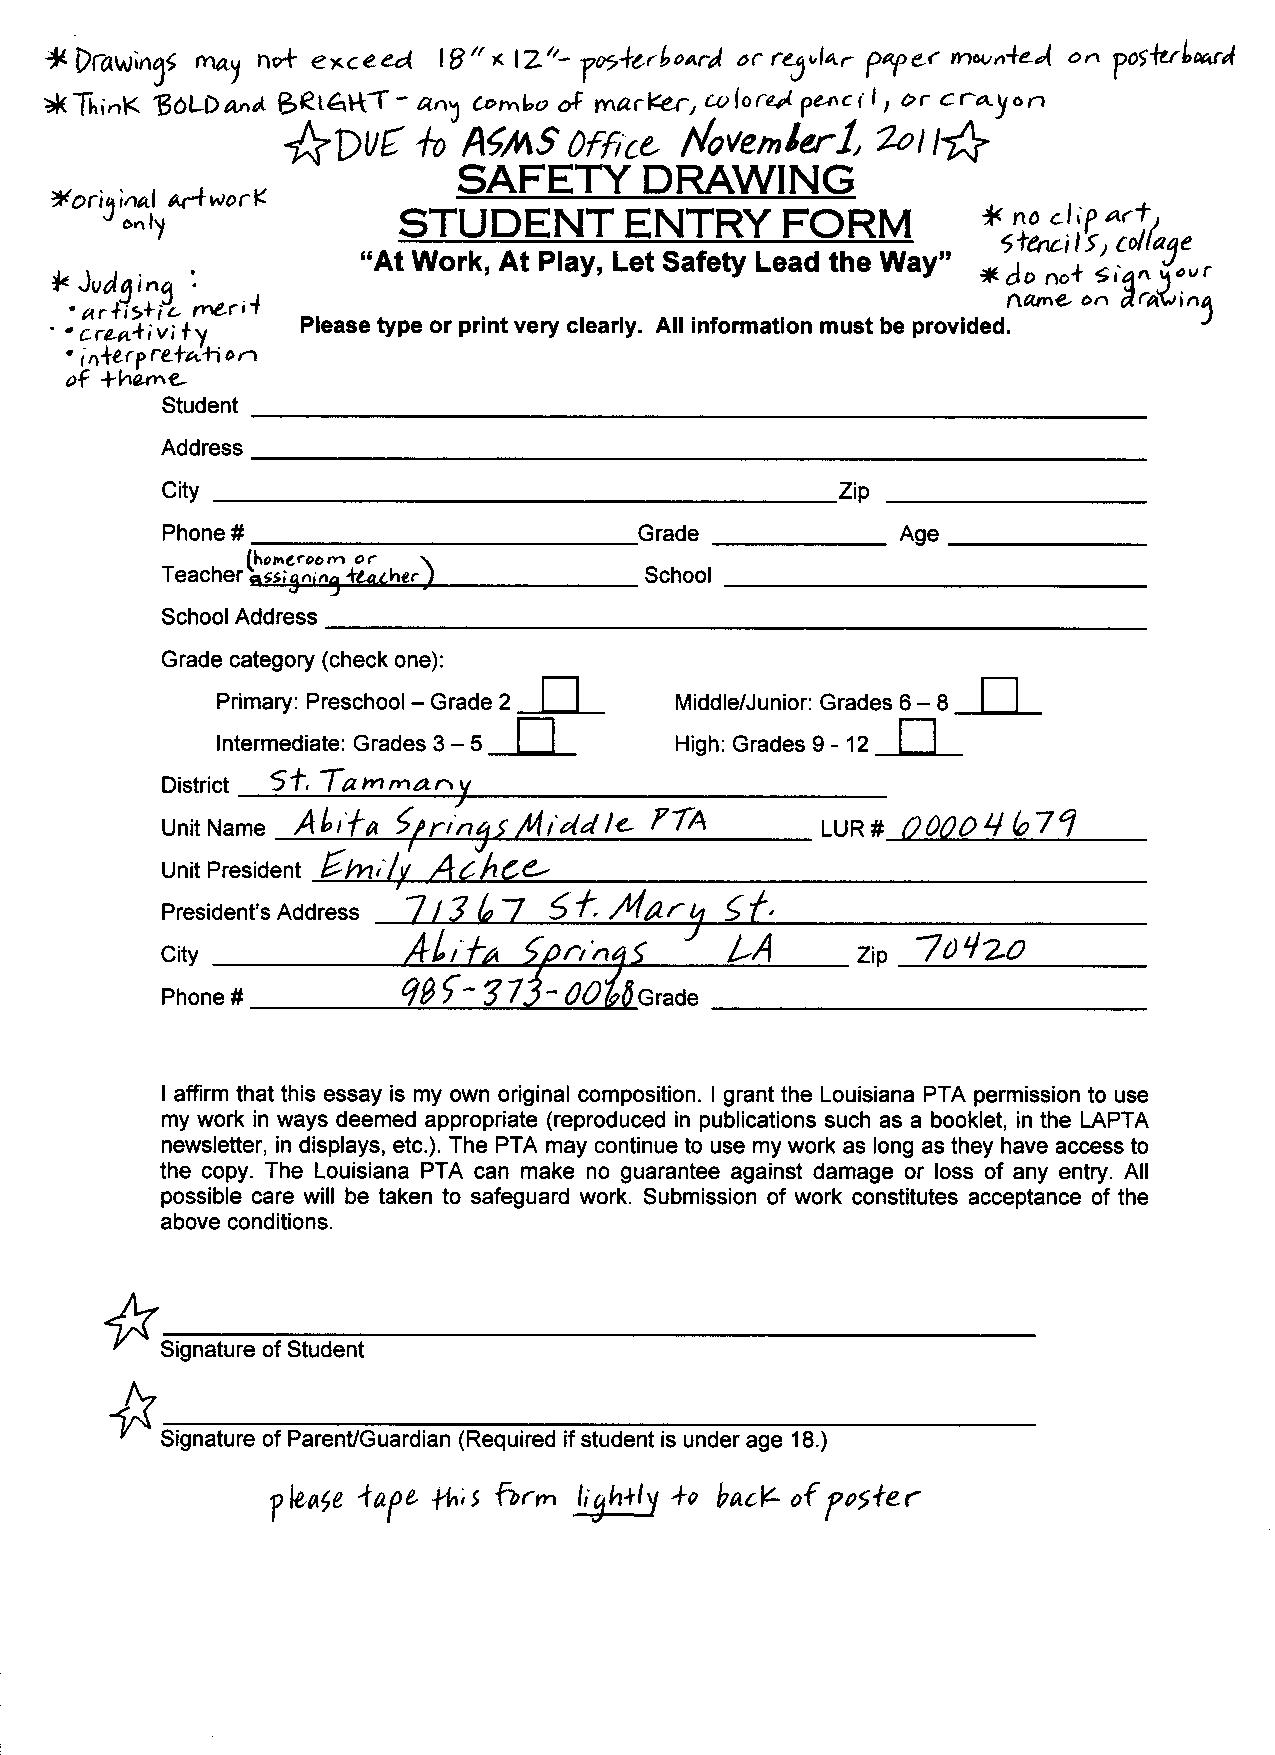 asms pta safety drawing entry form